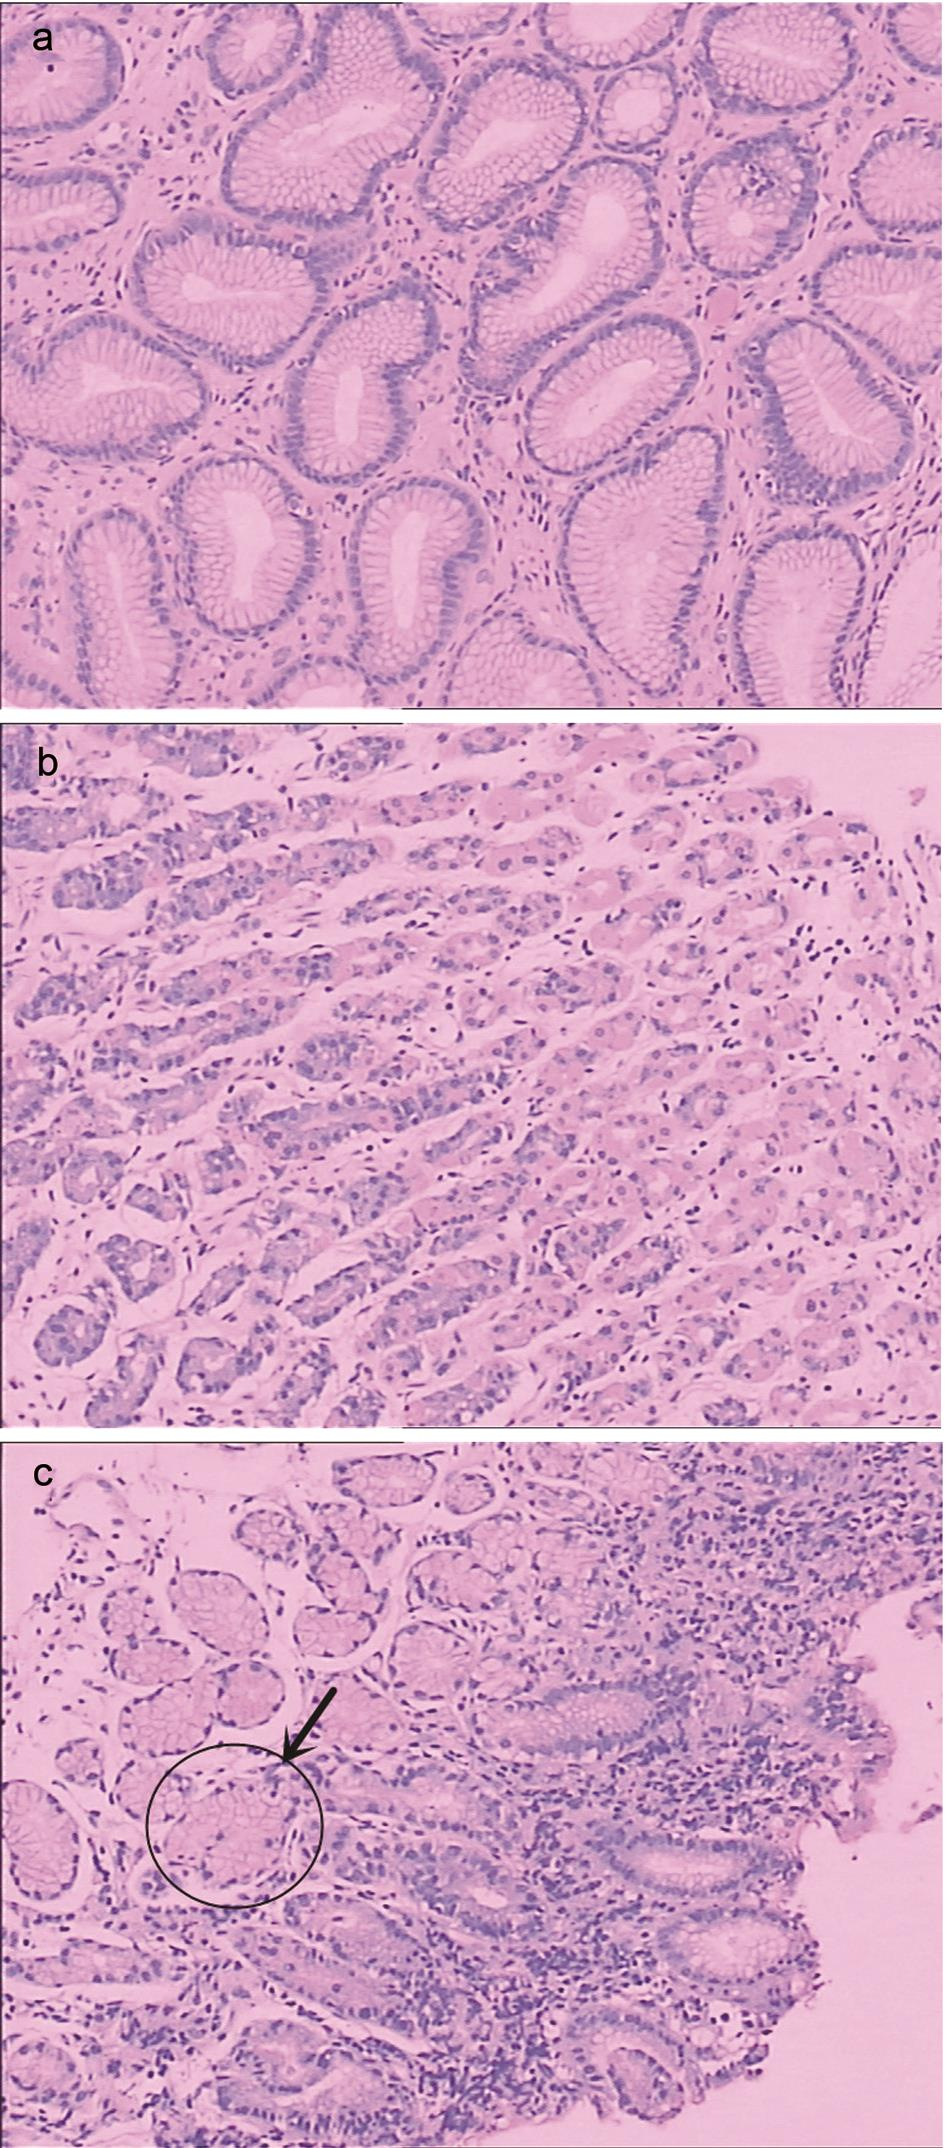 Gastric glands and antralization.